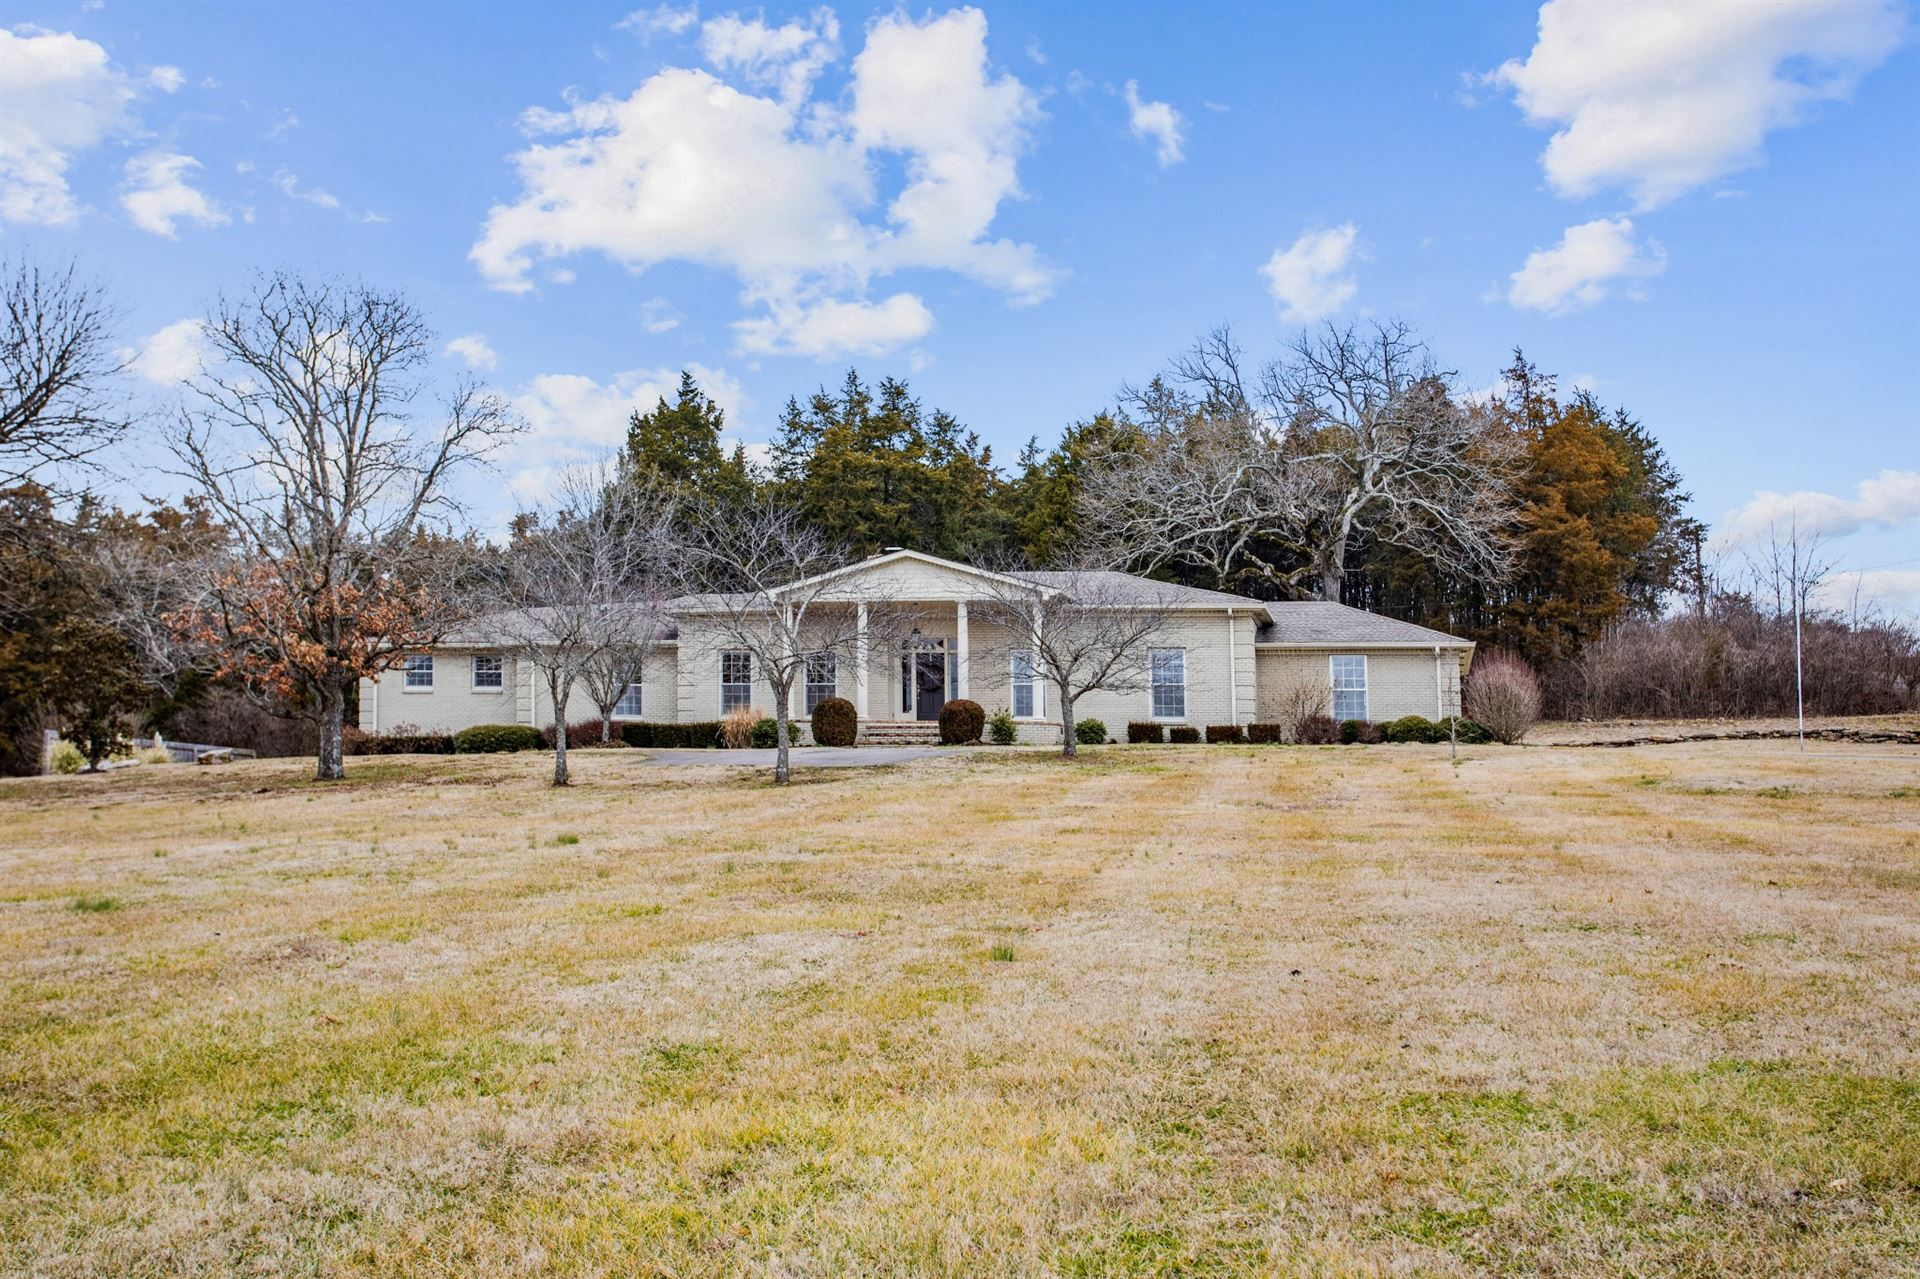 Photo of 1946 Old Hickory Blvd, Brentwood, TN 37027 (MLS # 2233307)